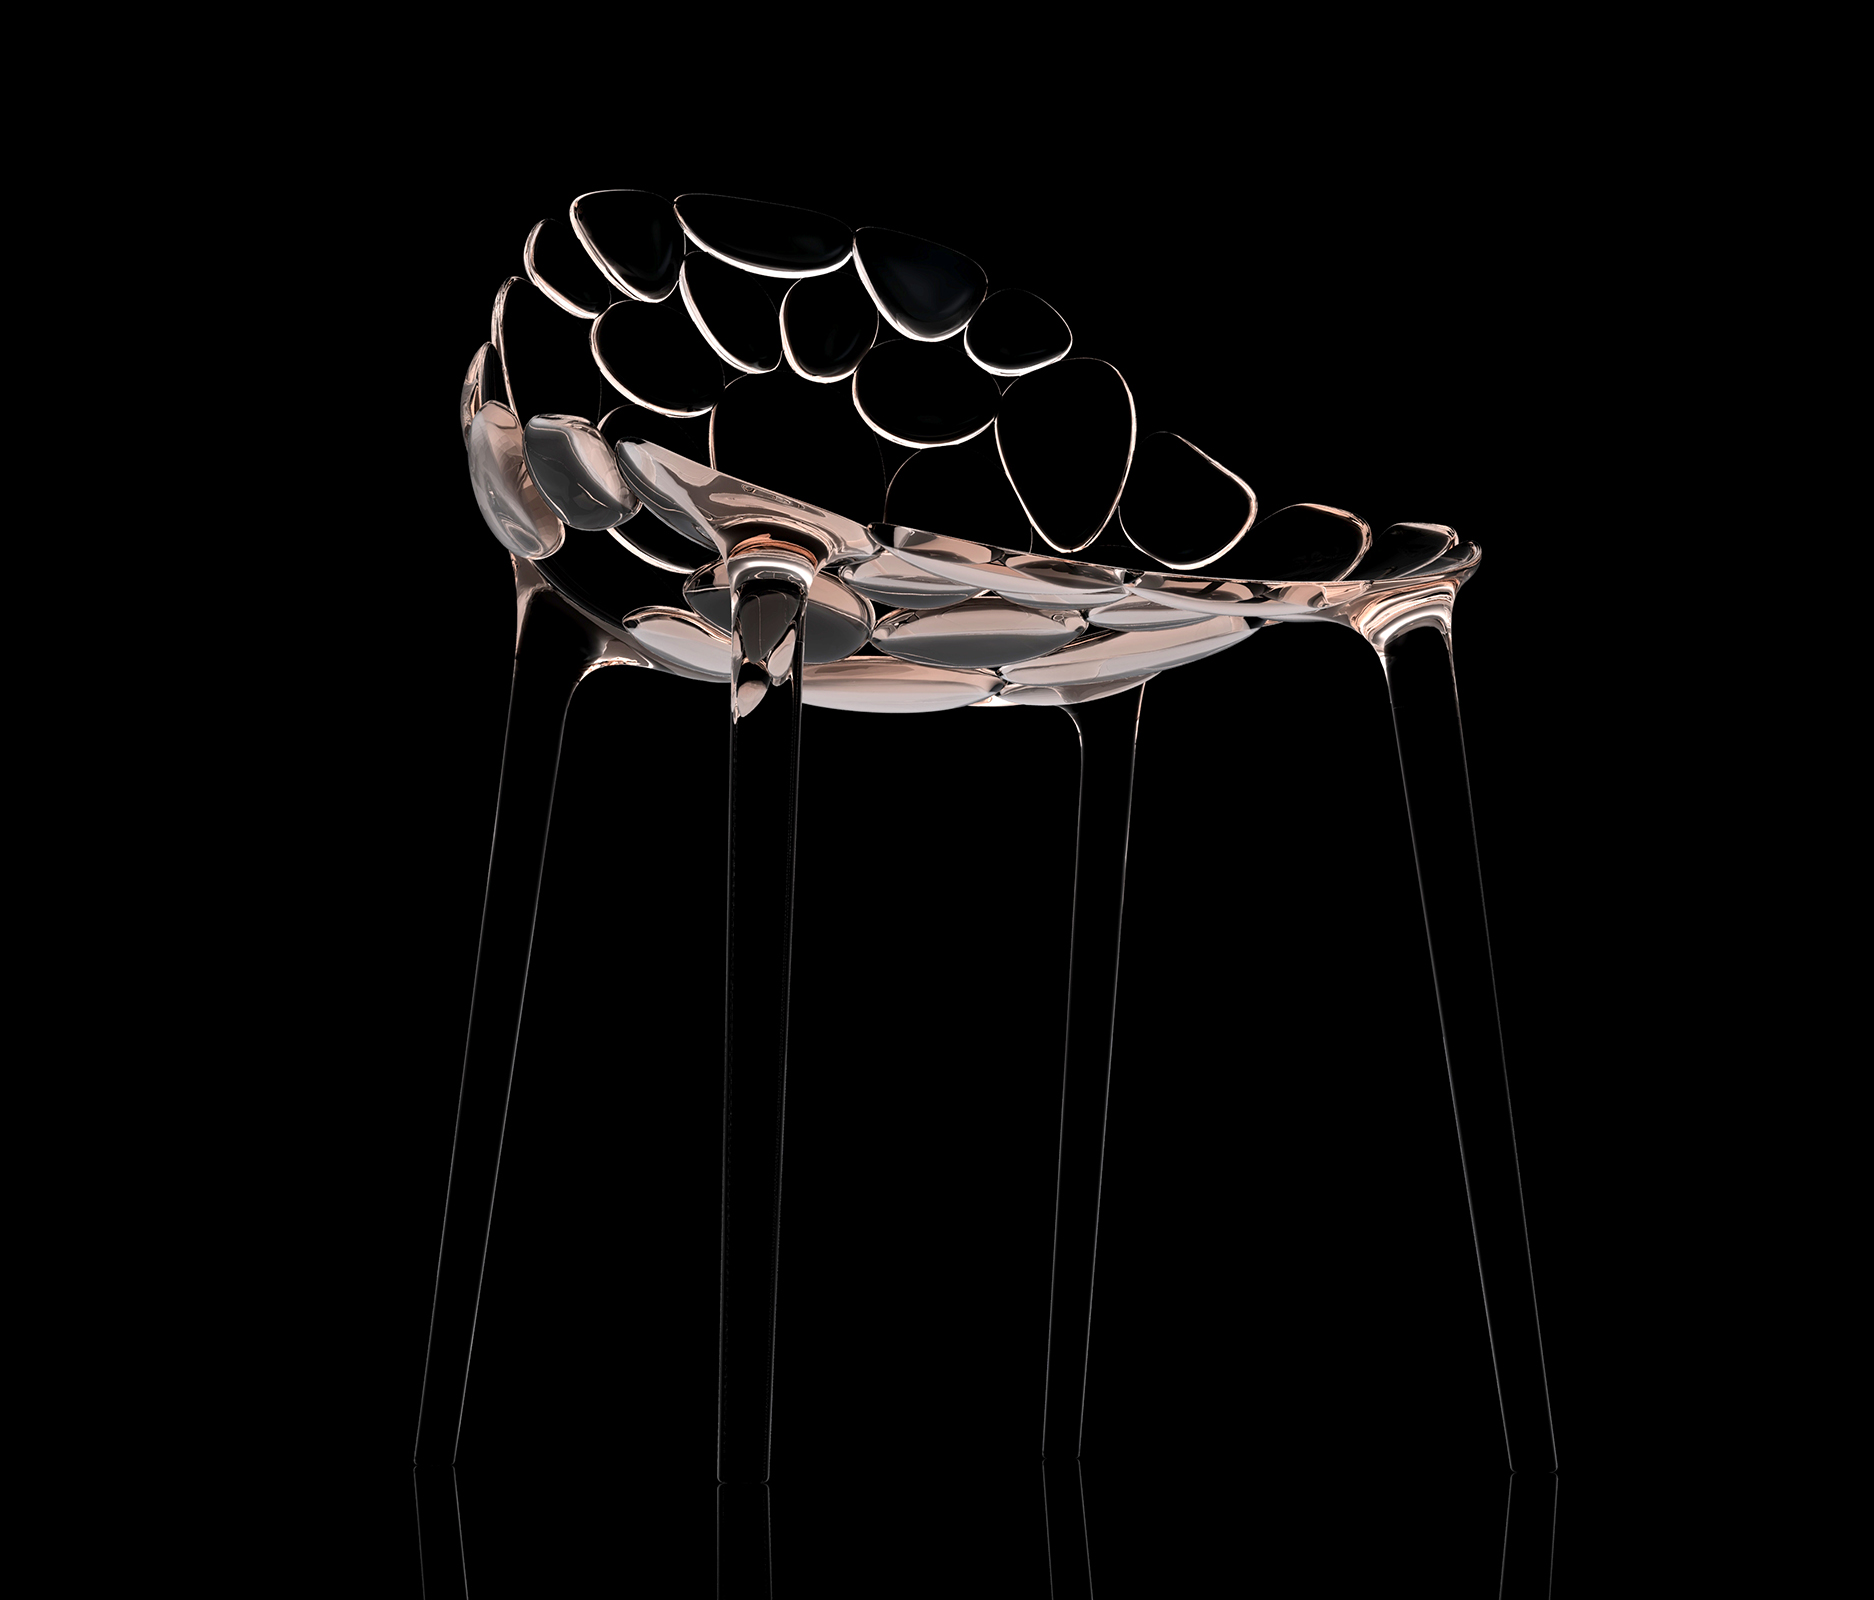 Claud-io chair by eugeni Quitllet with Kartell 3